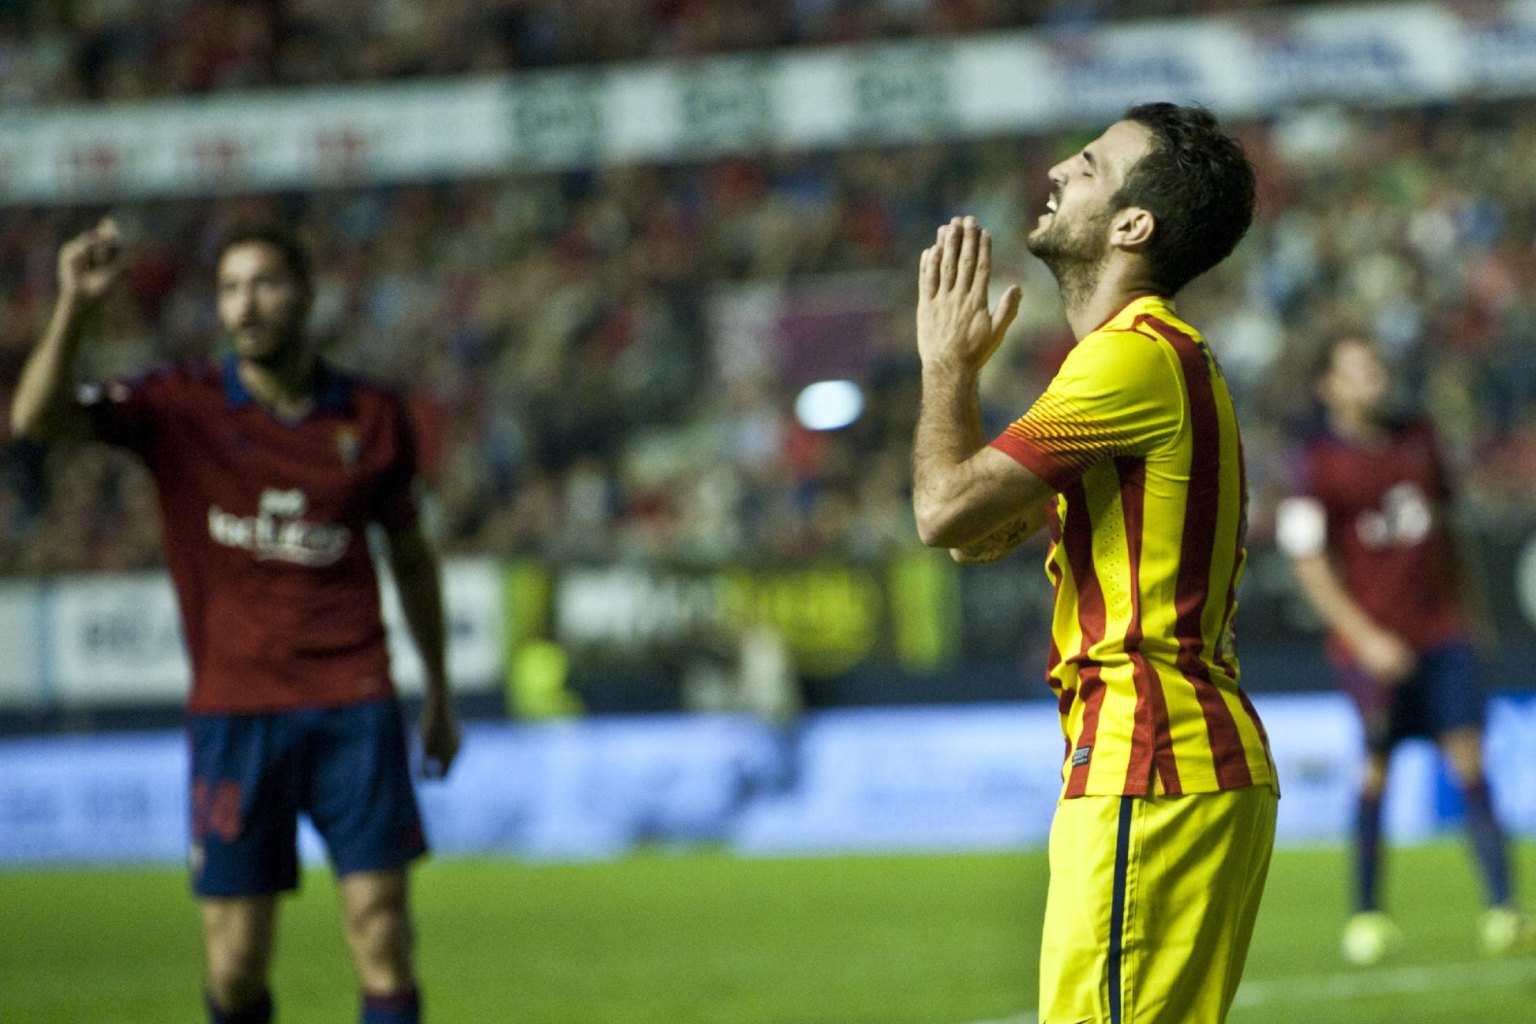 Fabregas frustrated, praying in Barcelona game 2013-2014